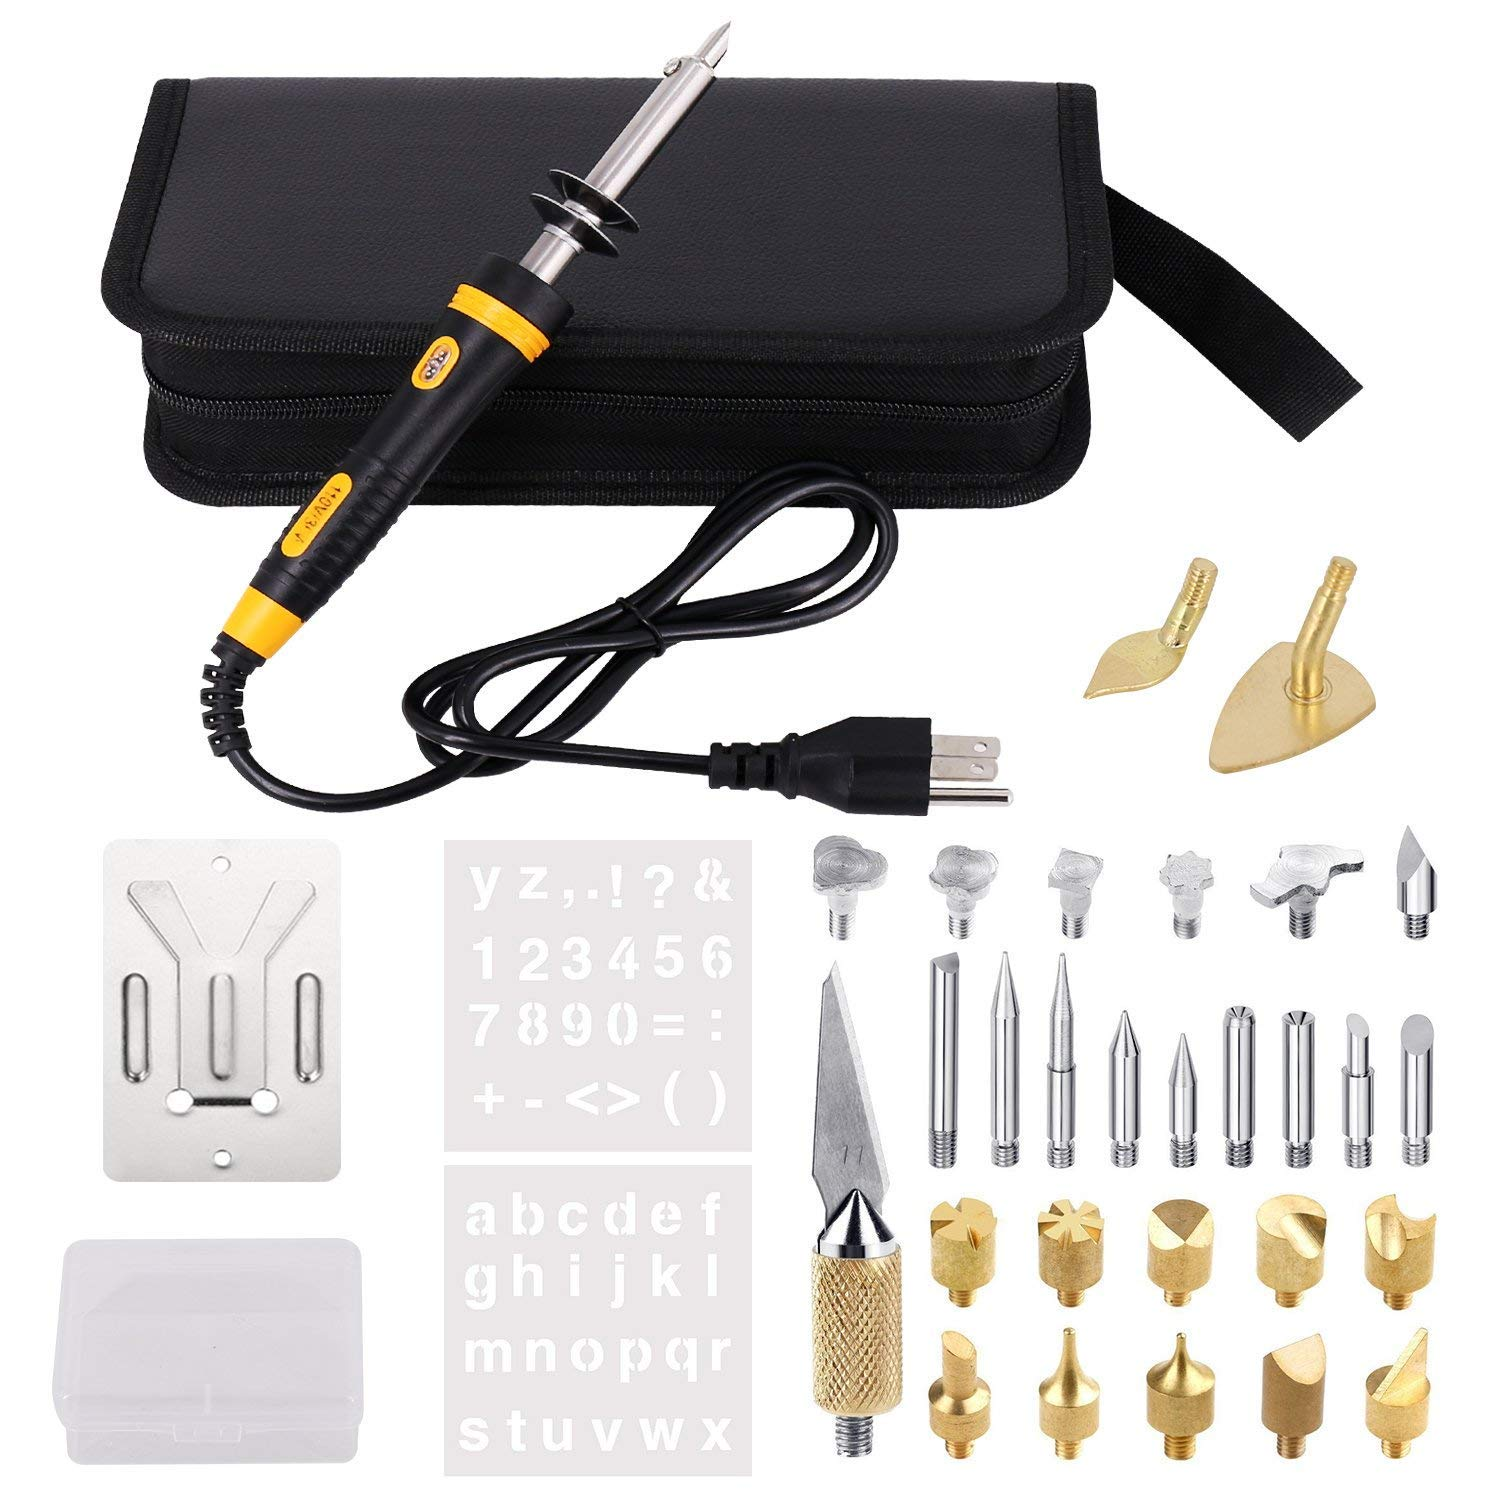 Full Set Wood Burning Kit, Wood Burning Kit with Various Wood Embossing/Carving/Soldering Tips +Stencil + Stand + Carrying Case